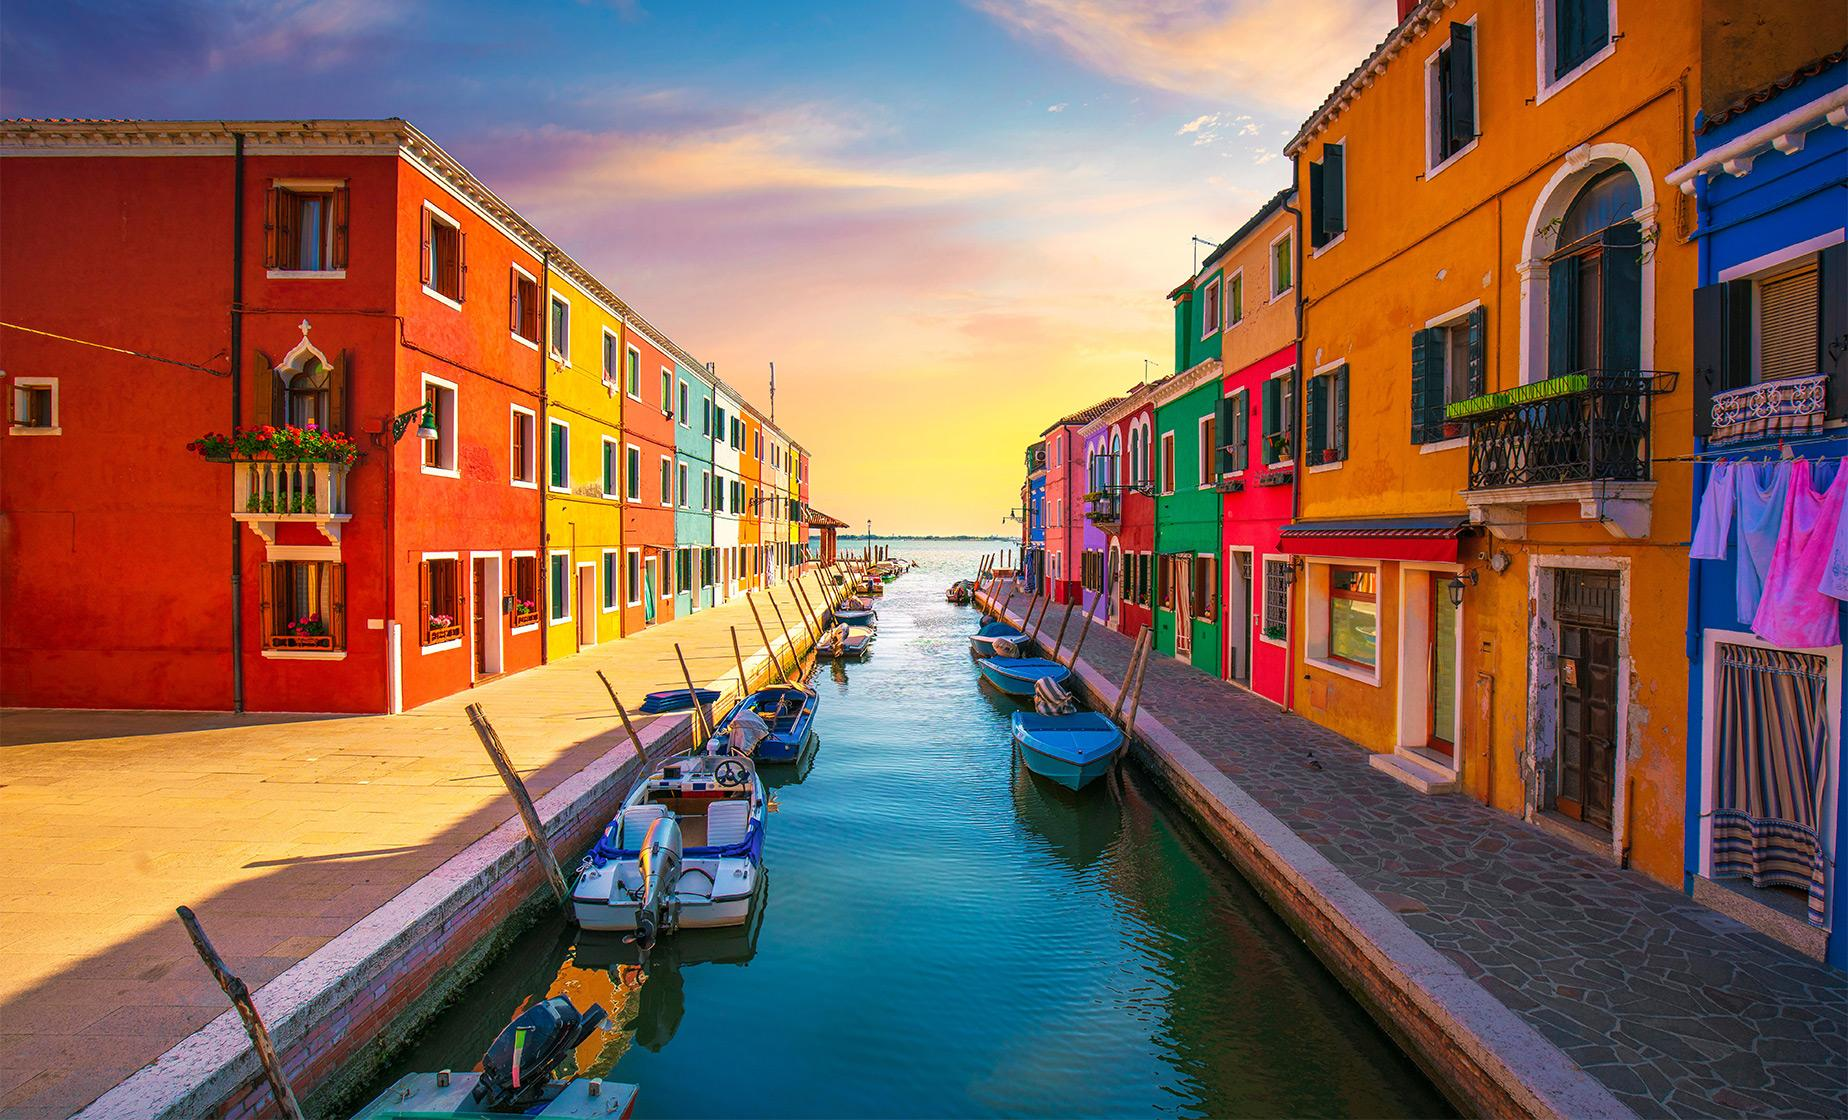 Enchanted Isles of Murano, Burano and Torcello